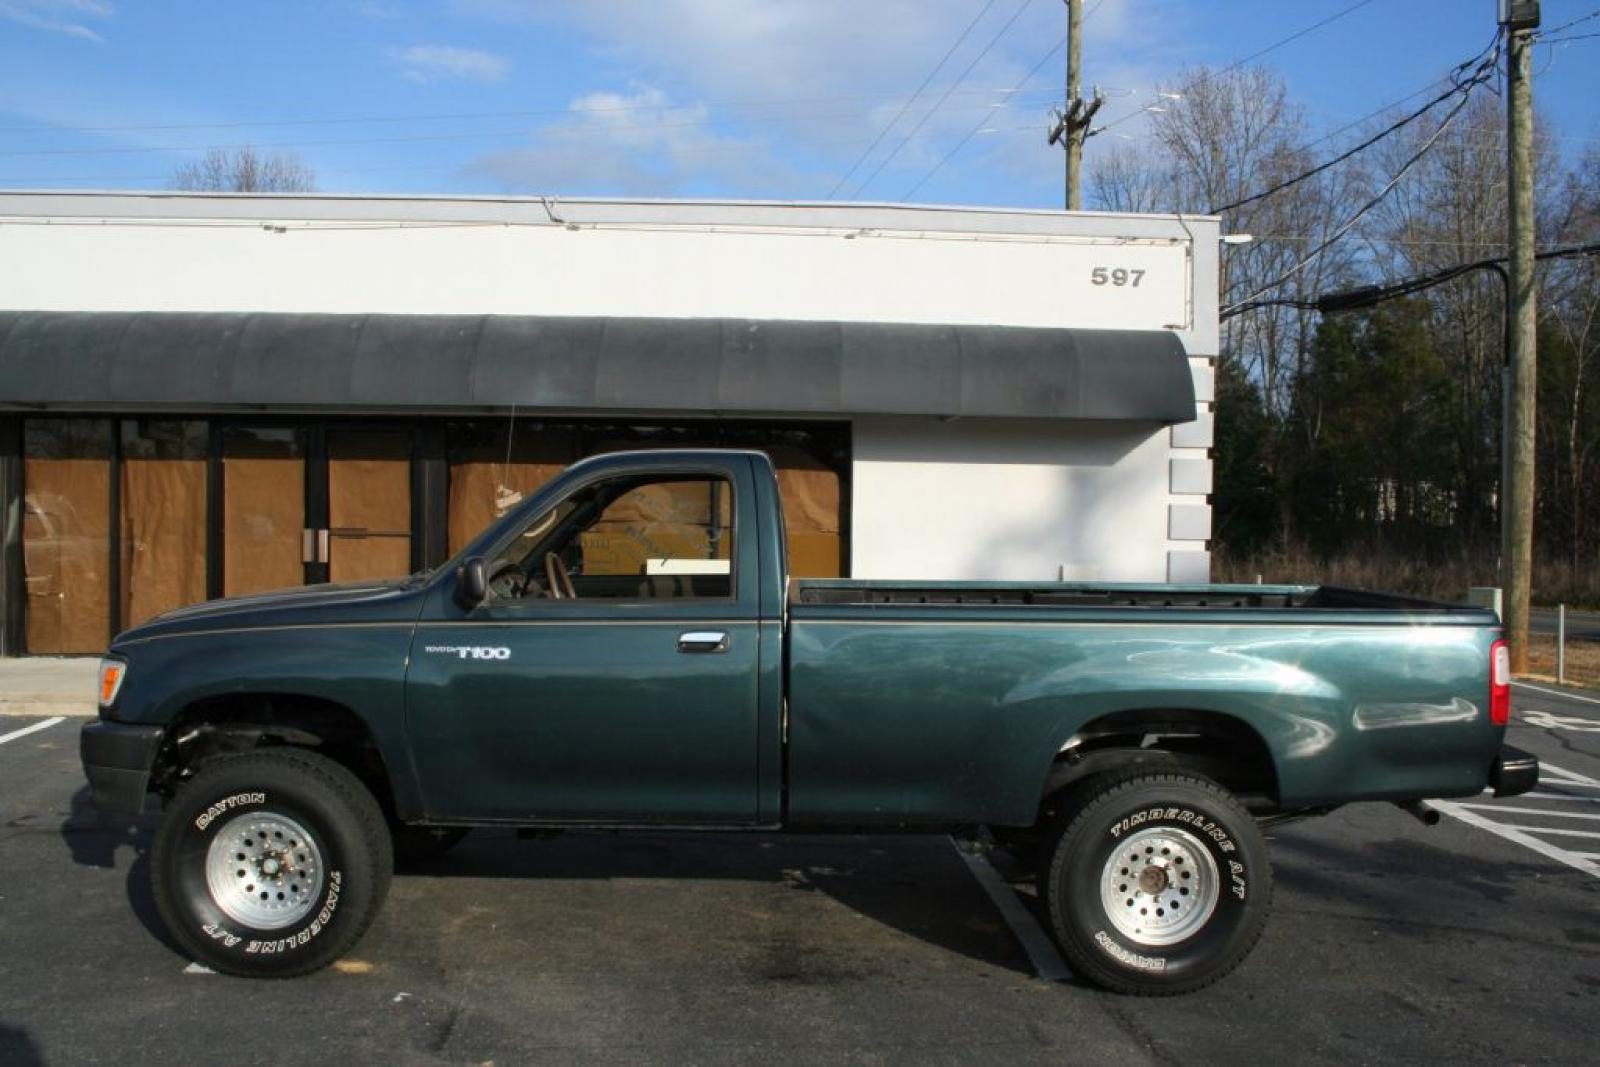 1993 Toyota T100 Information And Photos Zomb Drive